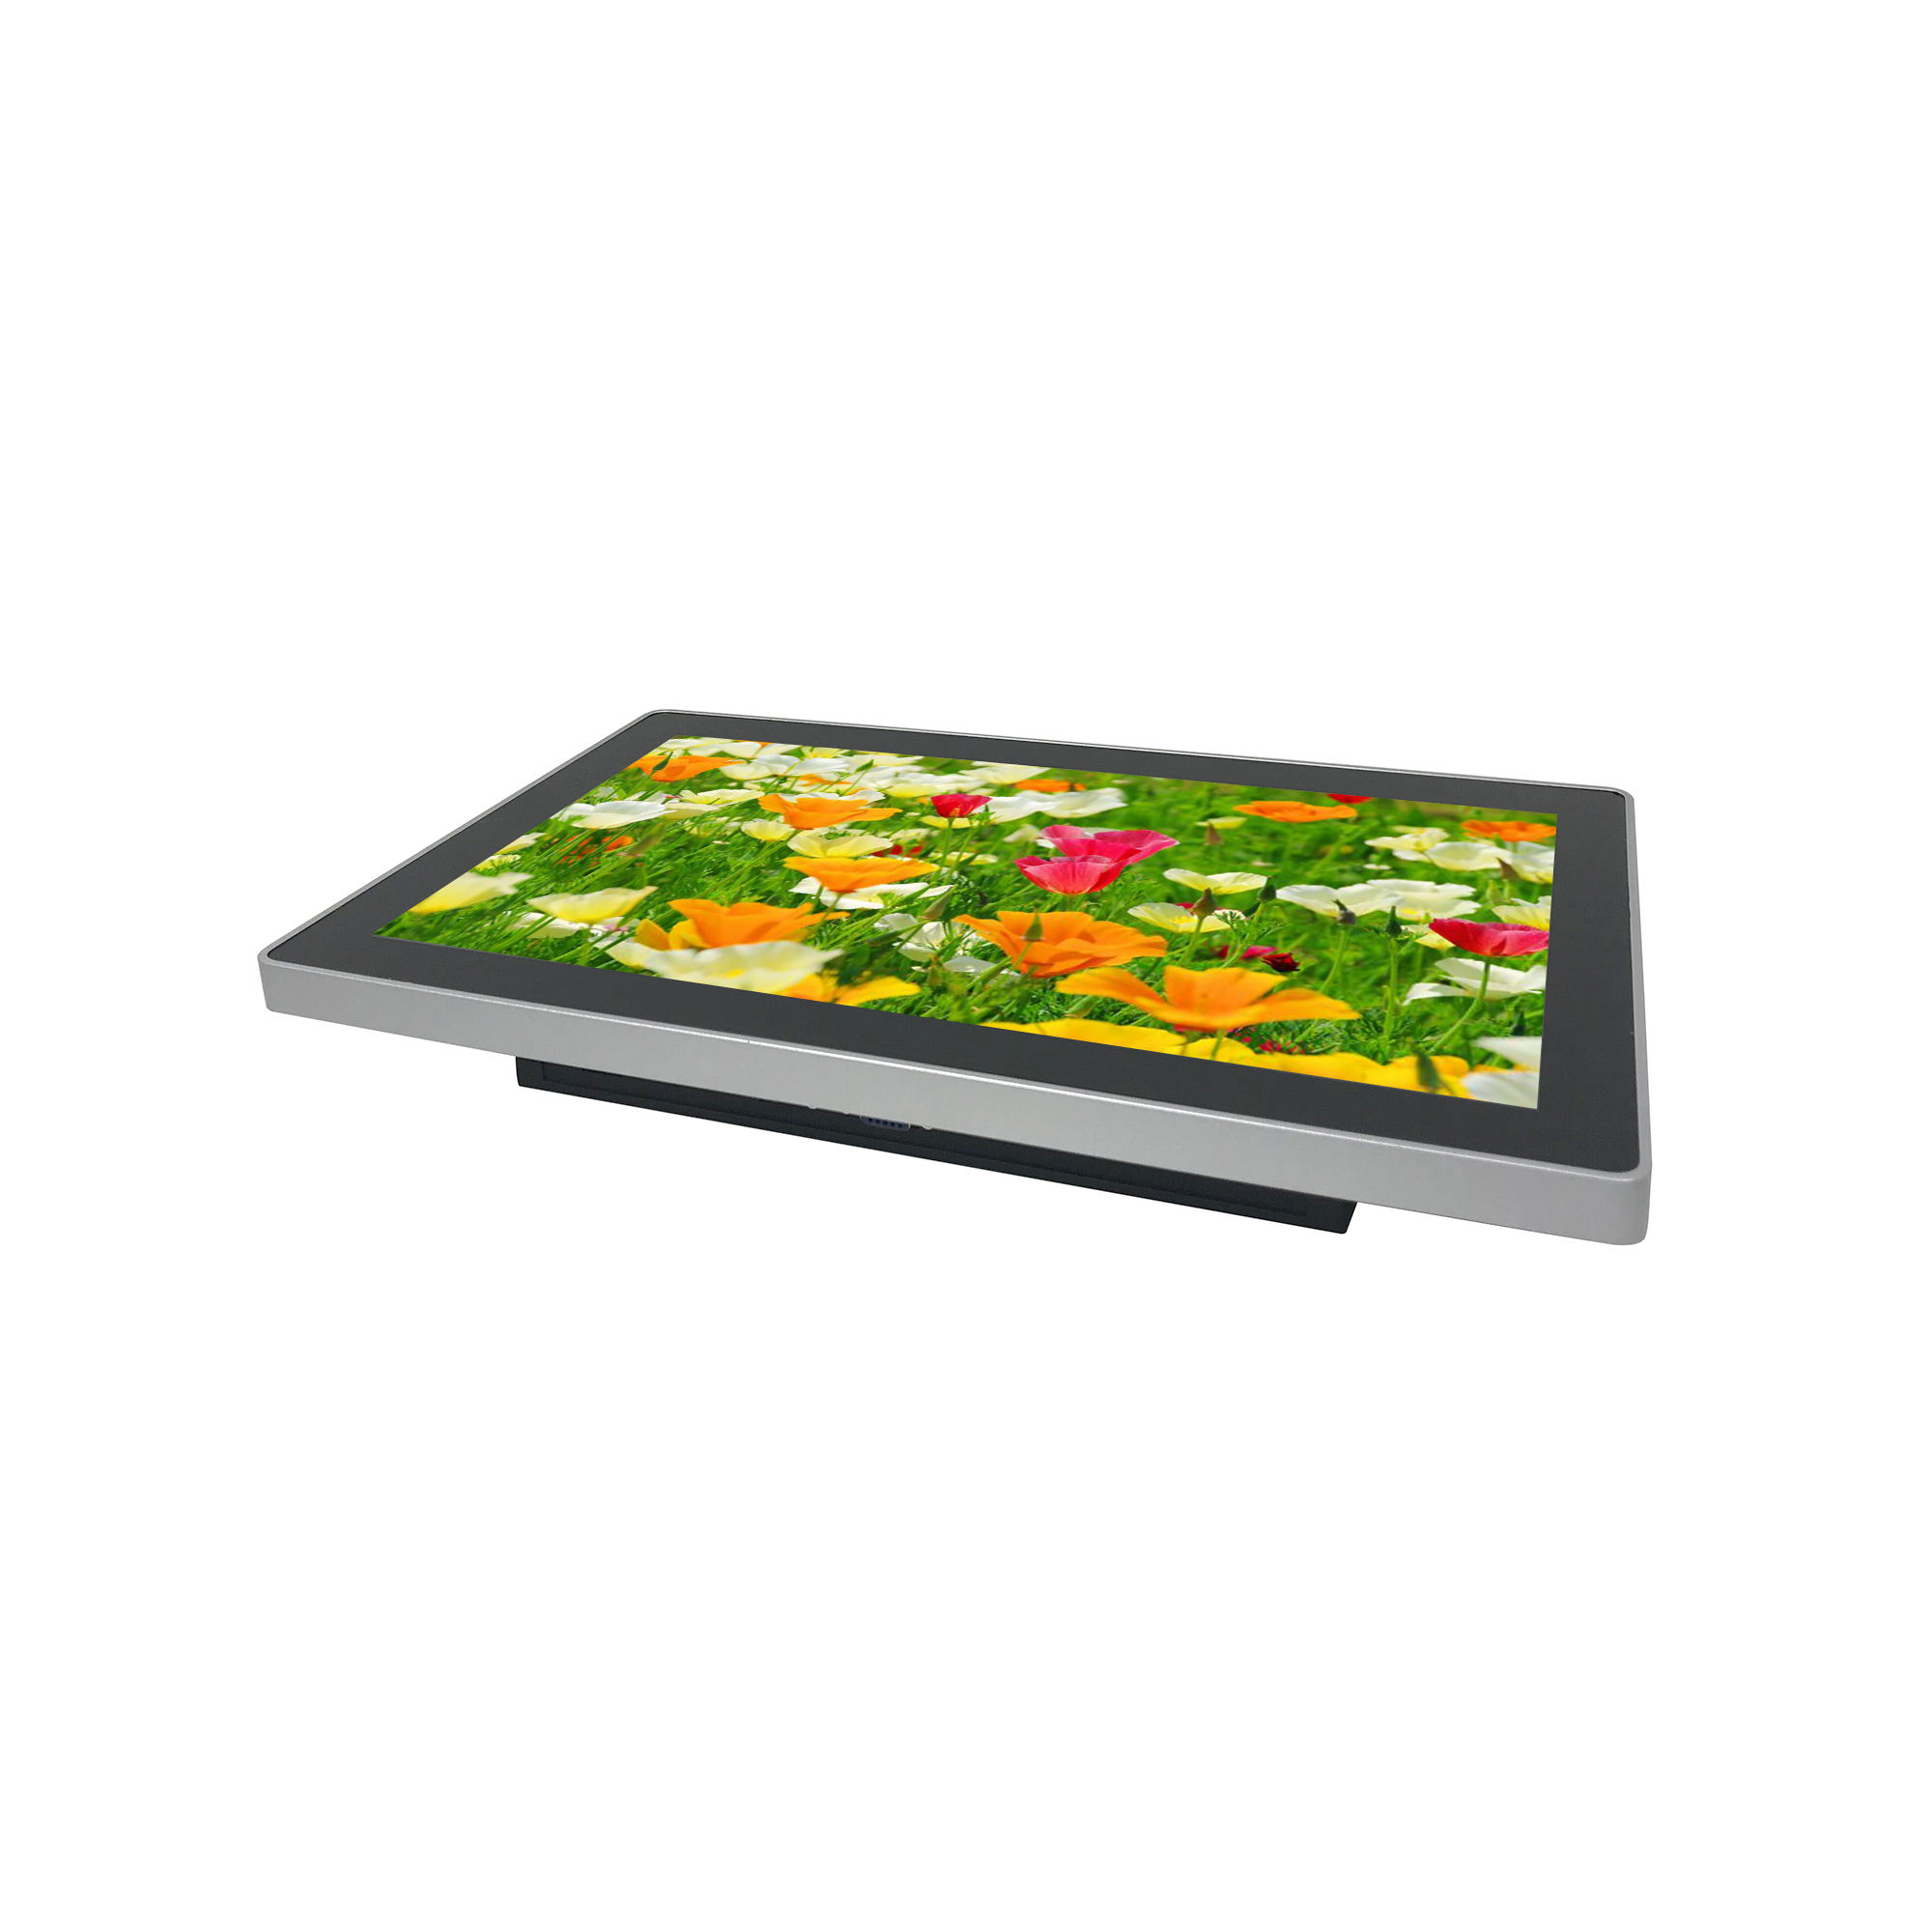 18.5 Inch Capacitive Touchscreen LED LCD Monitor w/ HD VGA DVI Inputs